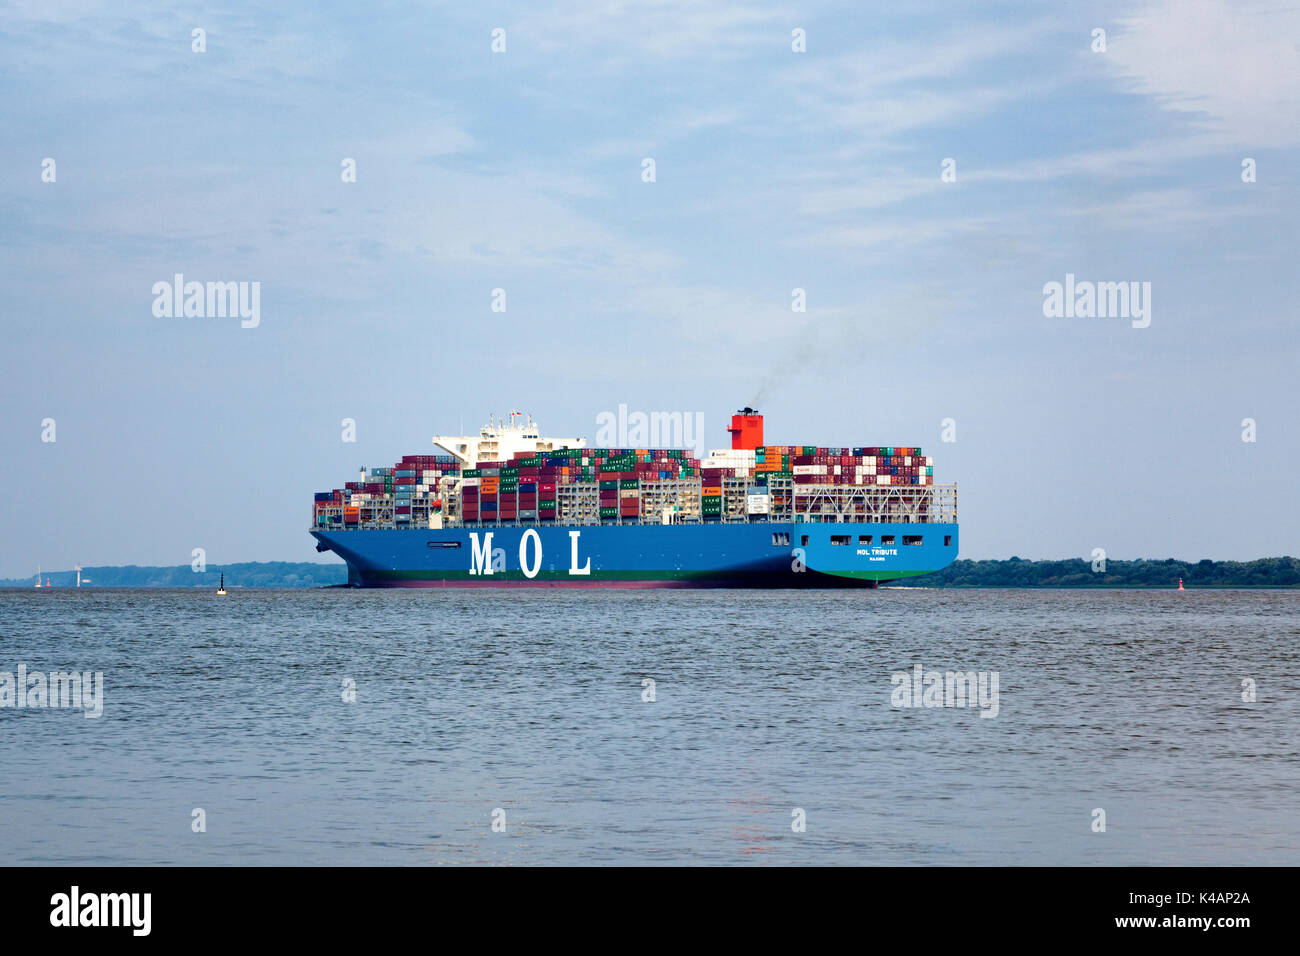 MOL Tribute is the third largest container ship in the world, built in 2017 by Samsung Heavy Industries. It is operated by Mitsui OSK Lines. - Stock Image